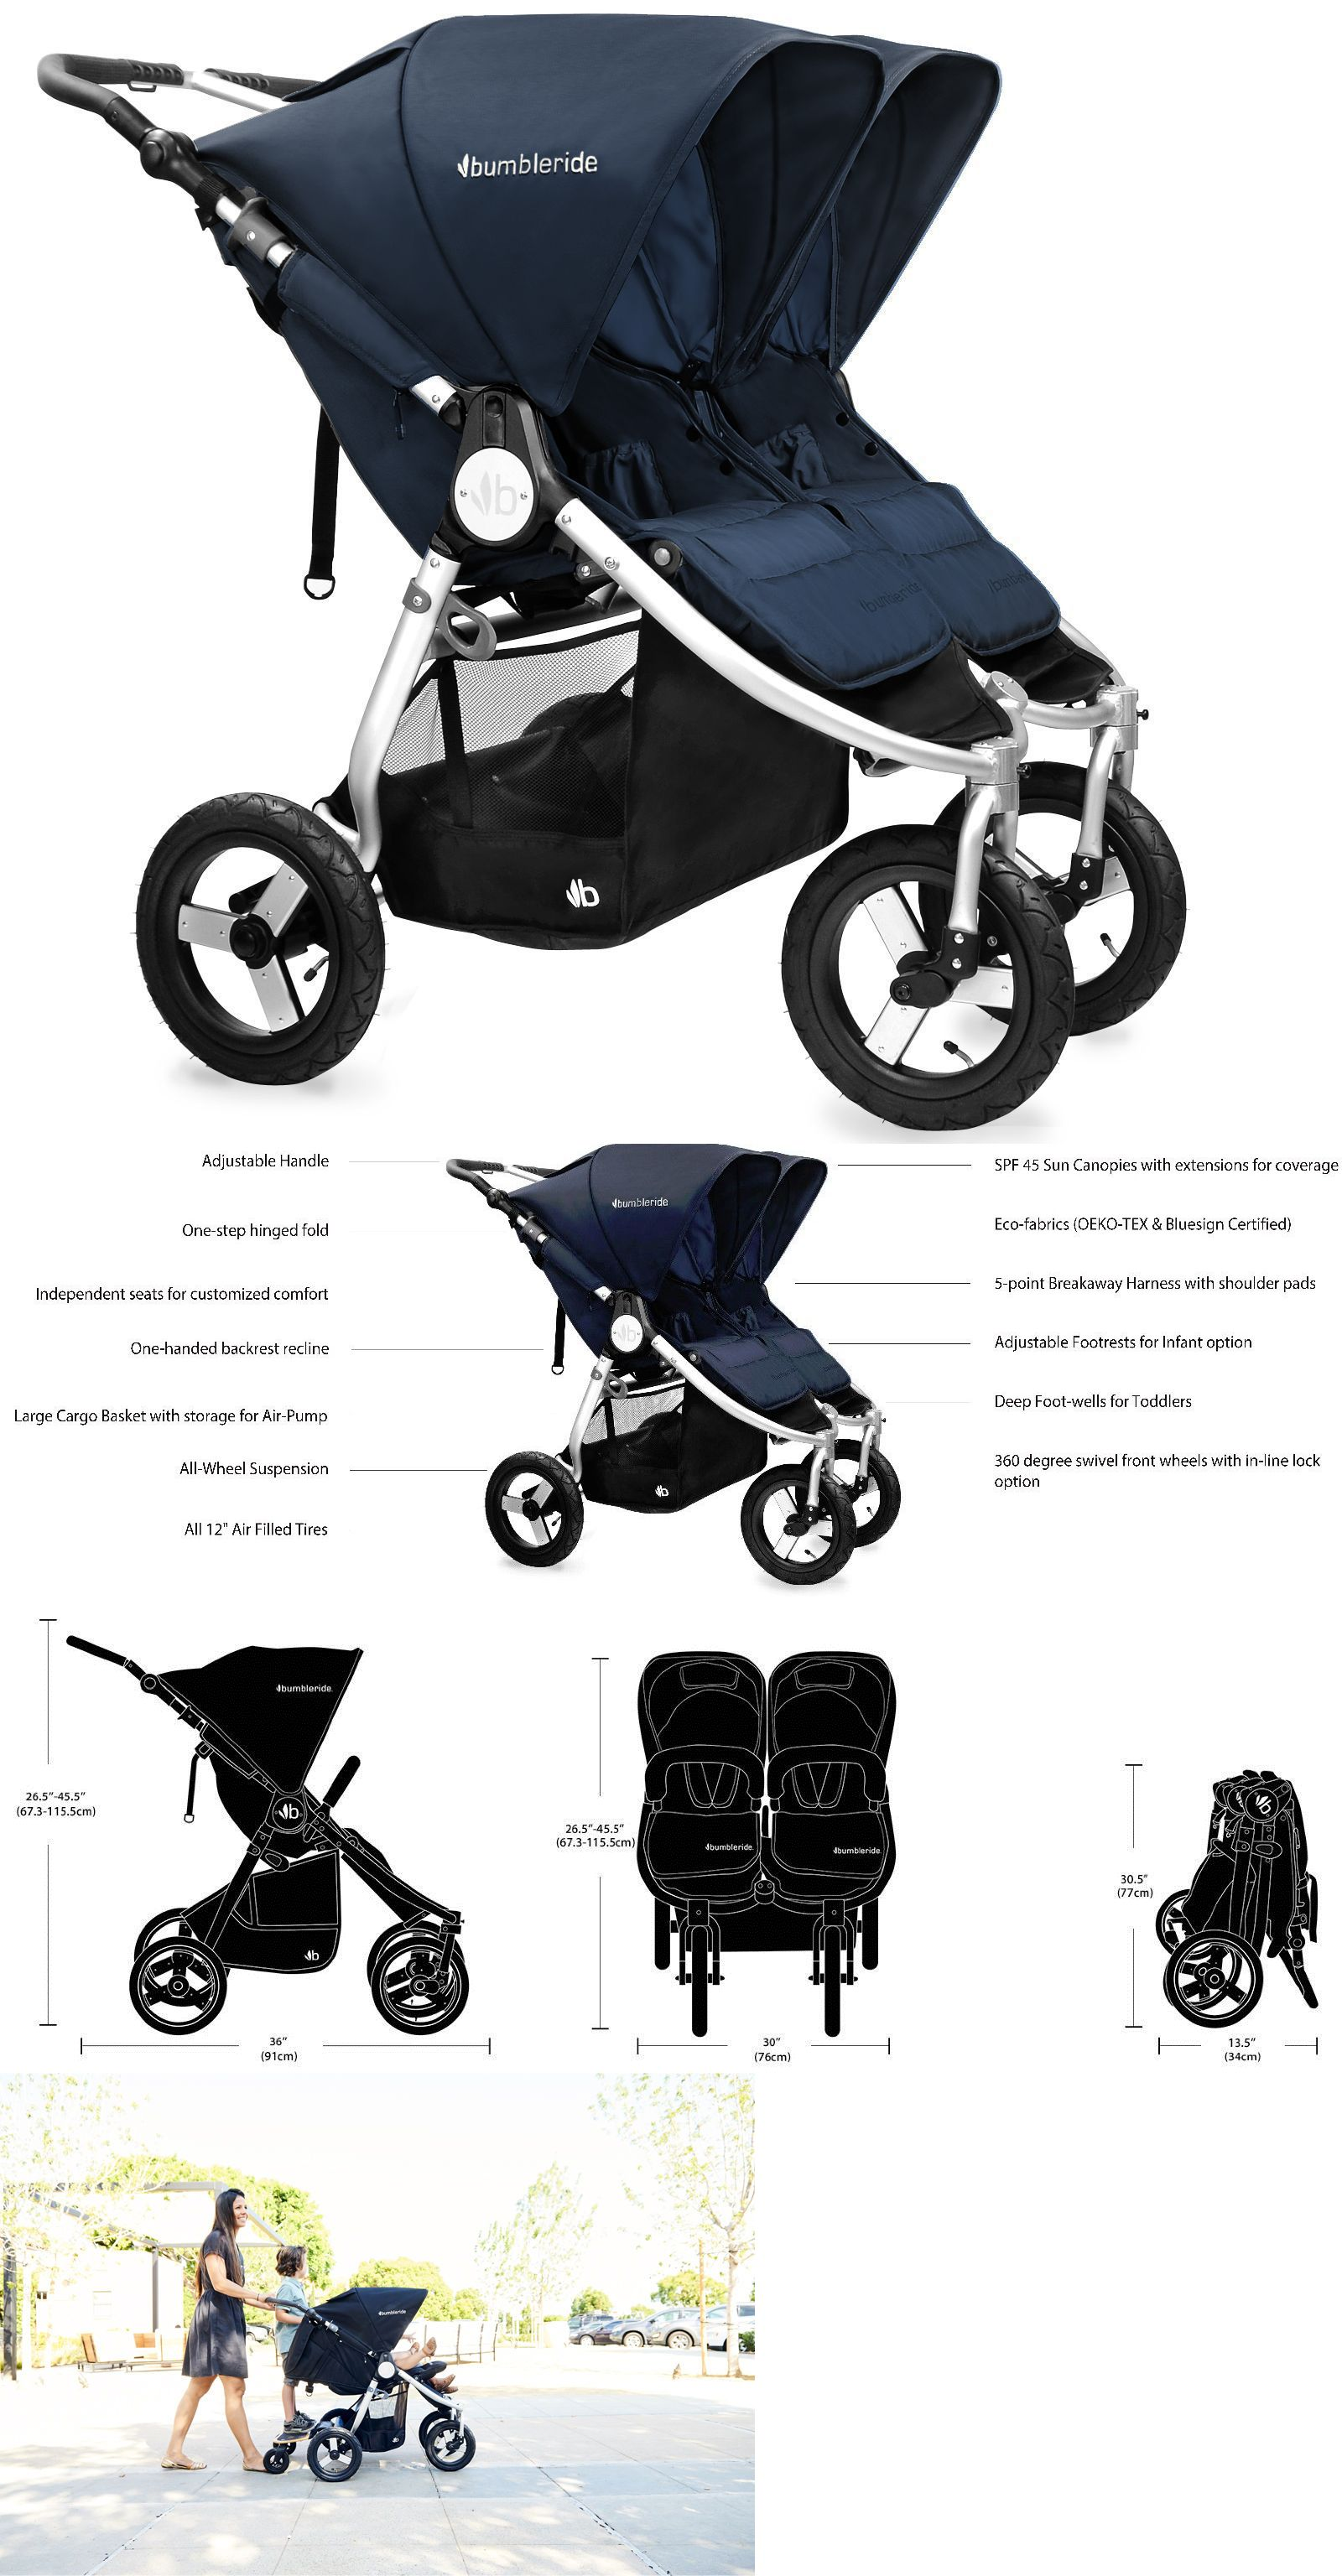 Strollers Baby Jogger City Select Lux Twin Tandem Double Stroller With Second Seat Slate BUY IT NOW ONLY $705 48 on eBay